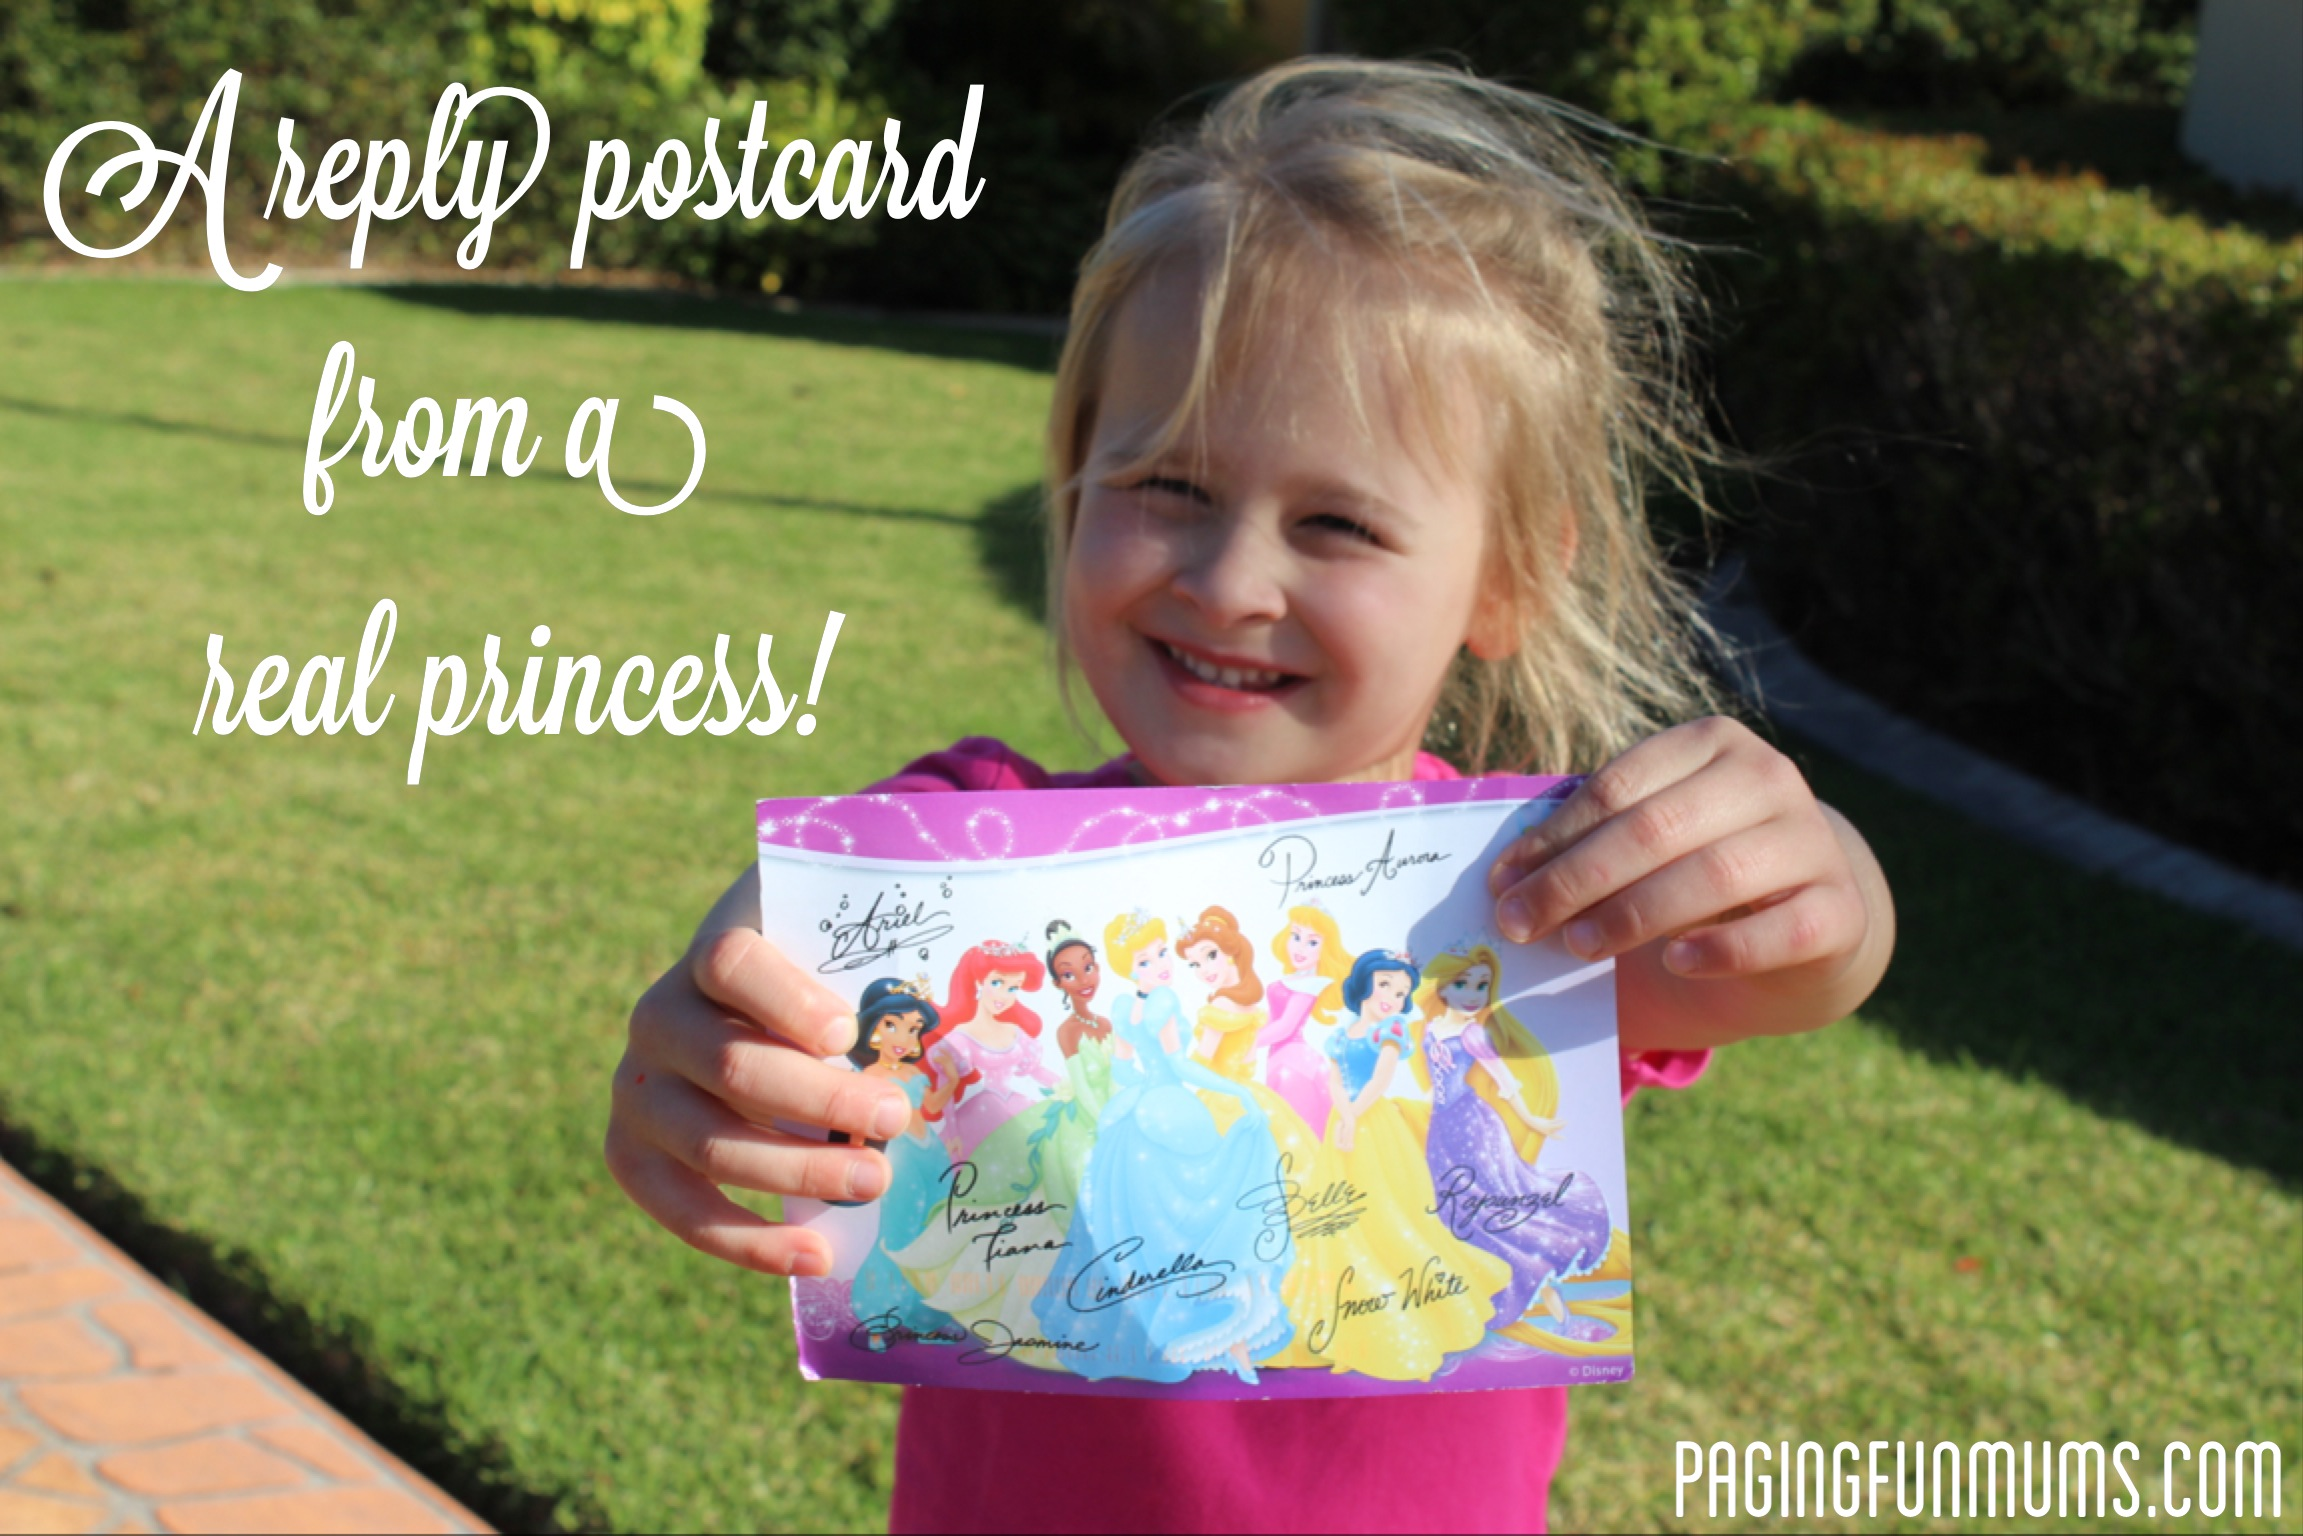 Write & recieve a postcard from a Disney Princess!